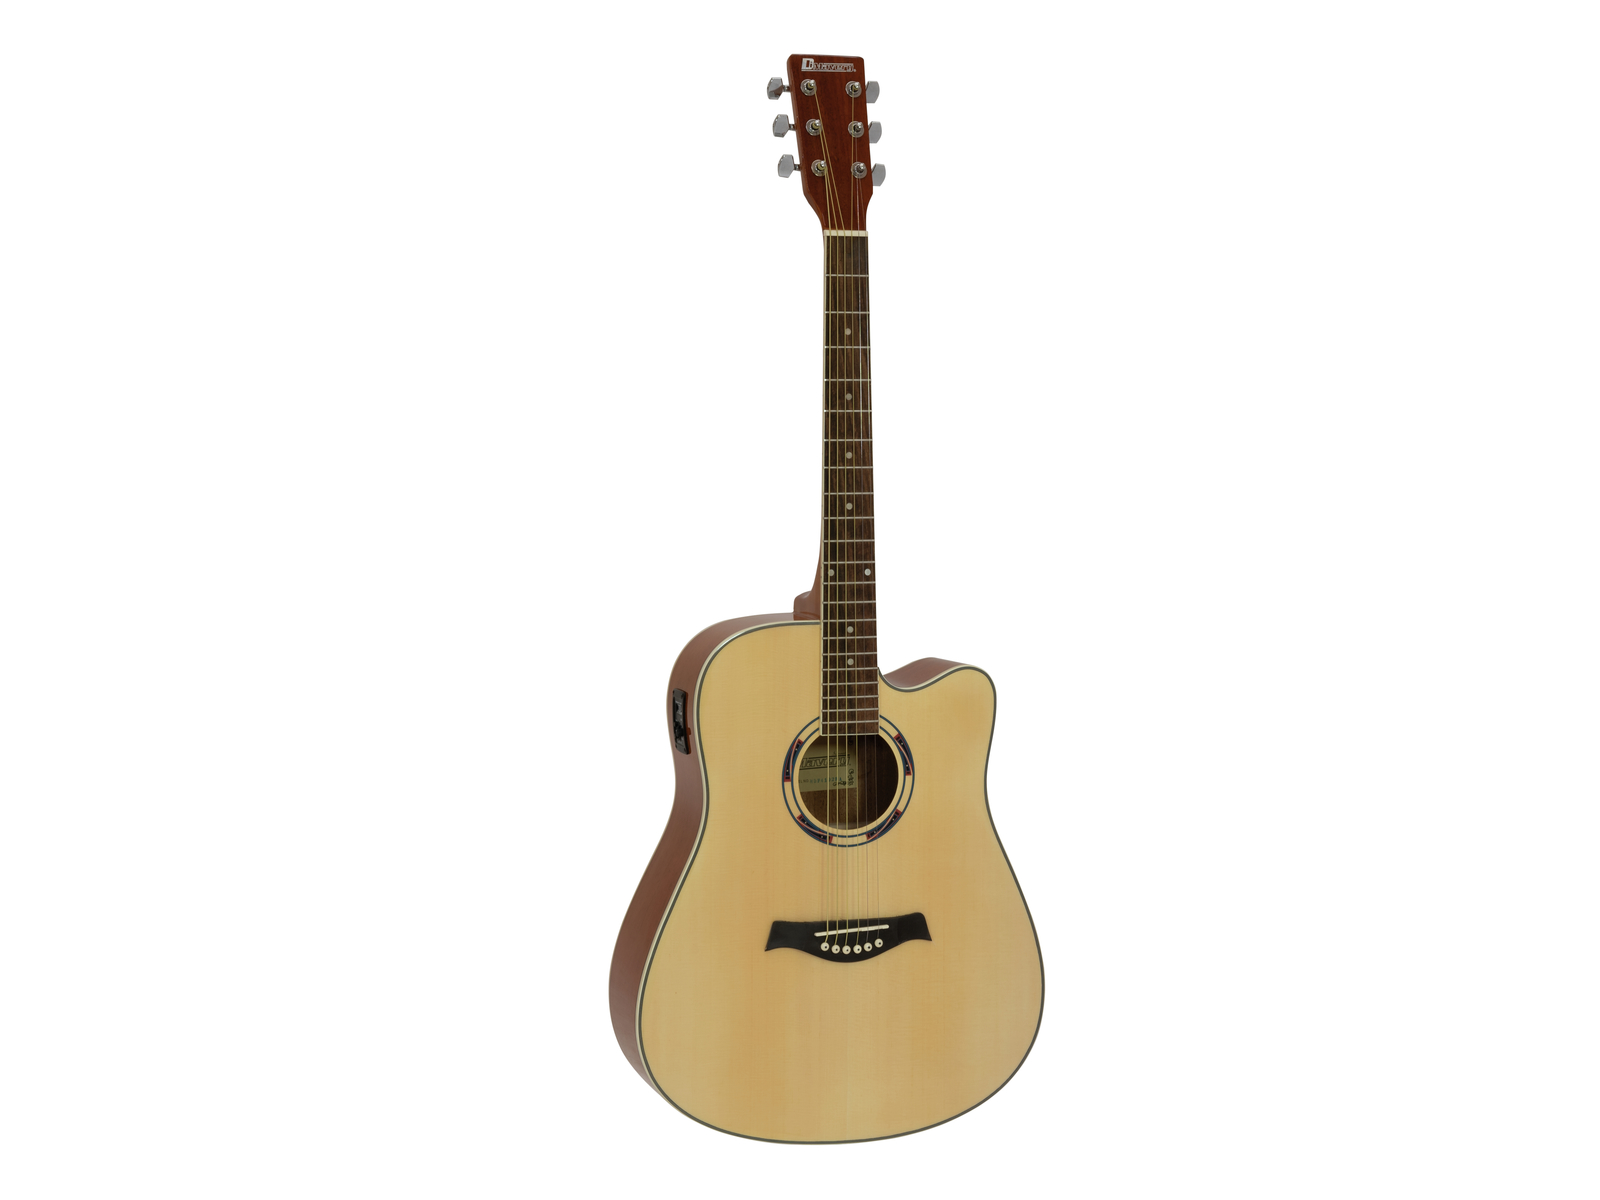 DIMAVERY DR-520 Dreadnought, l